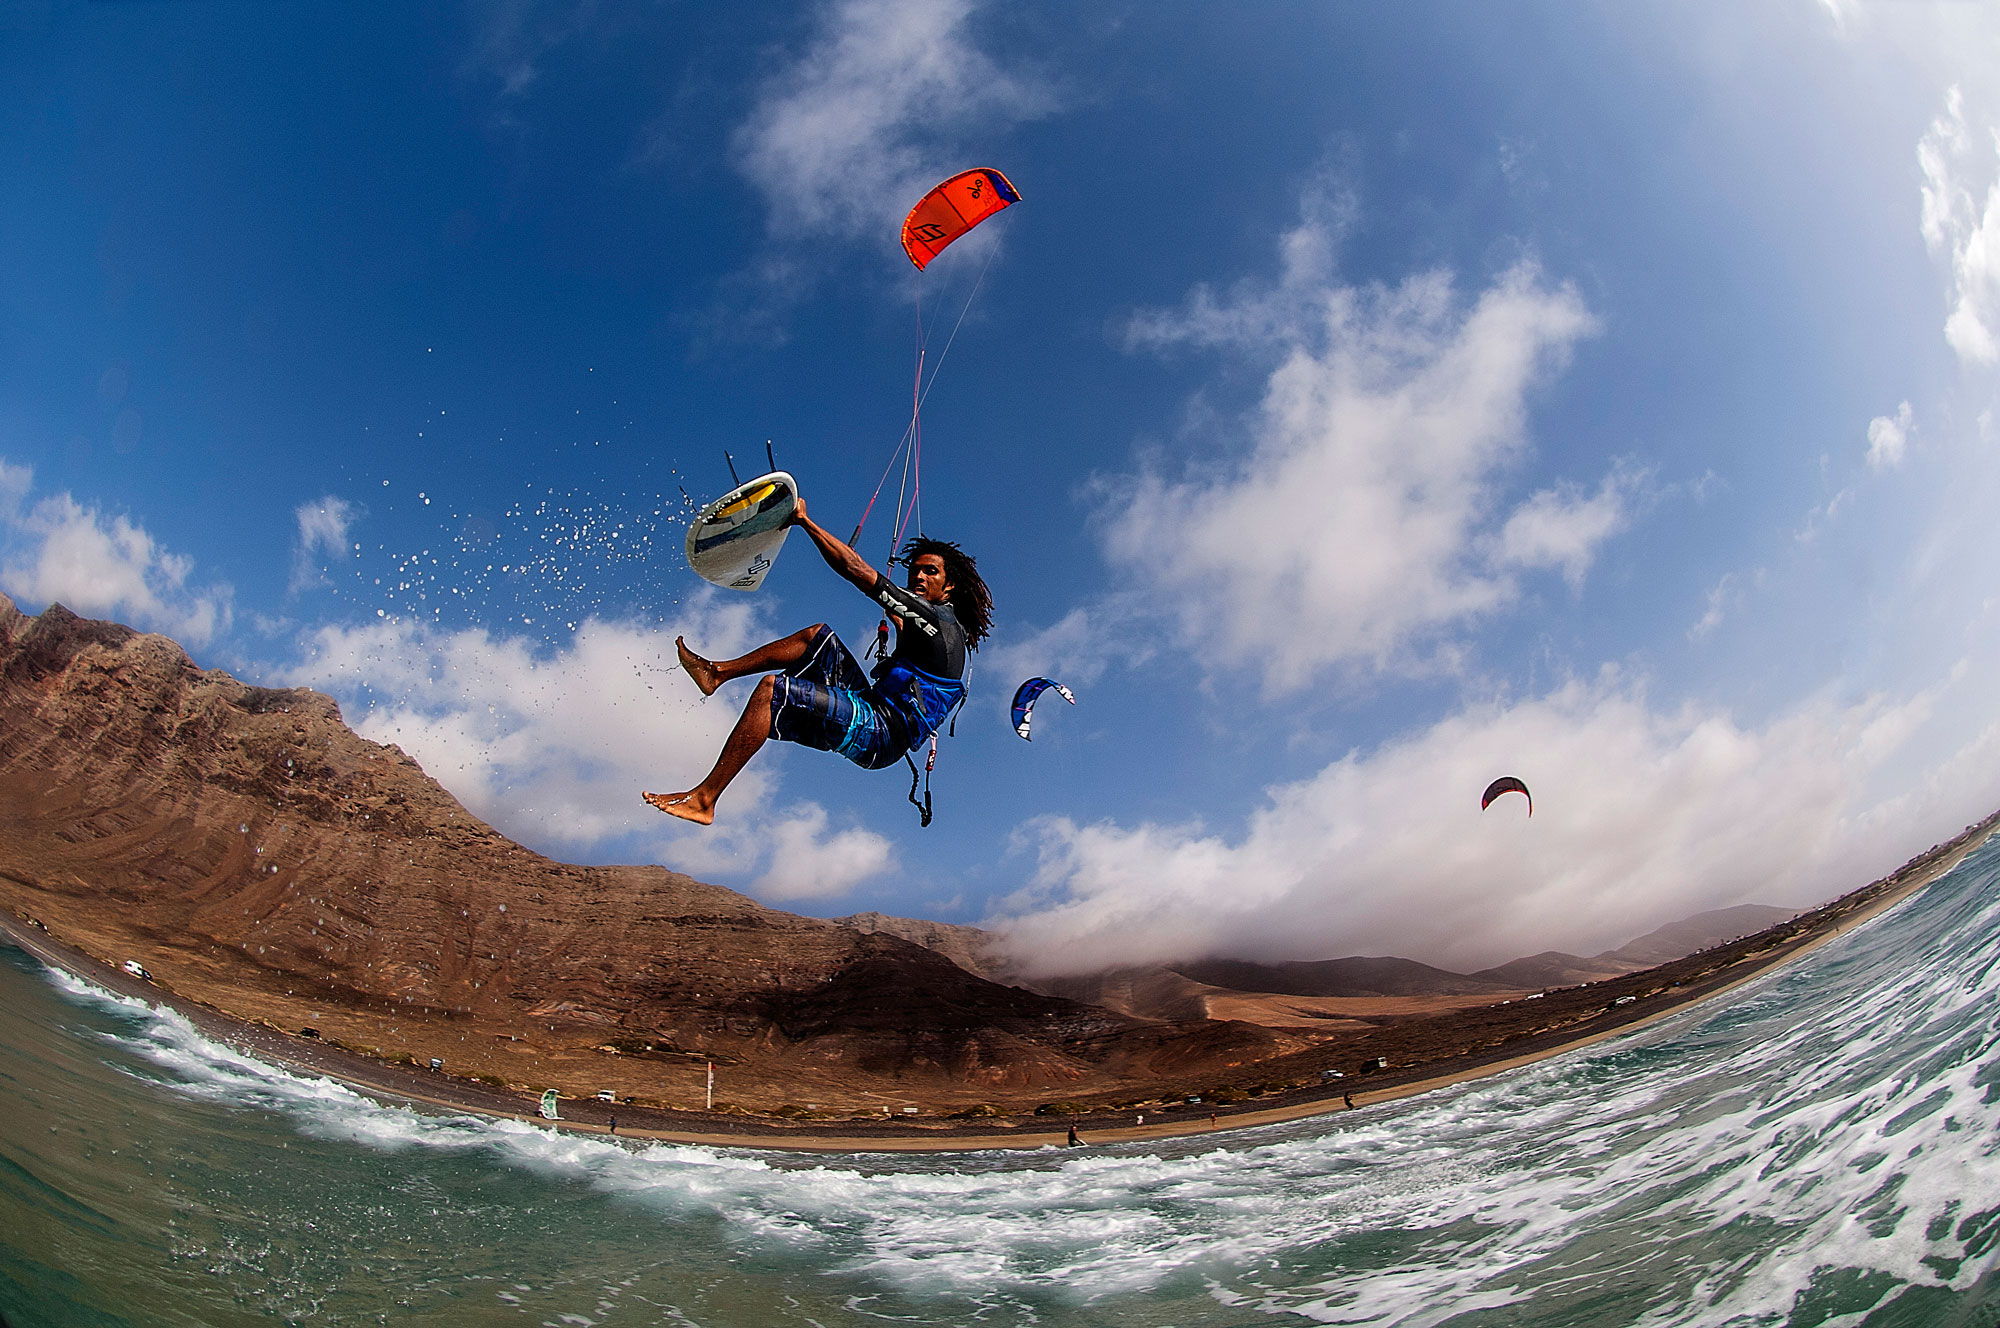 Kite boarders with a white board and red kite off the coast of Lanzarote catching air.